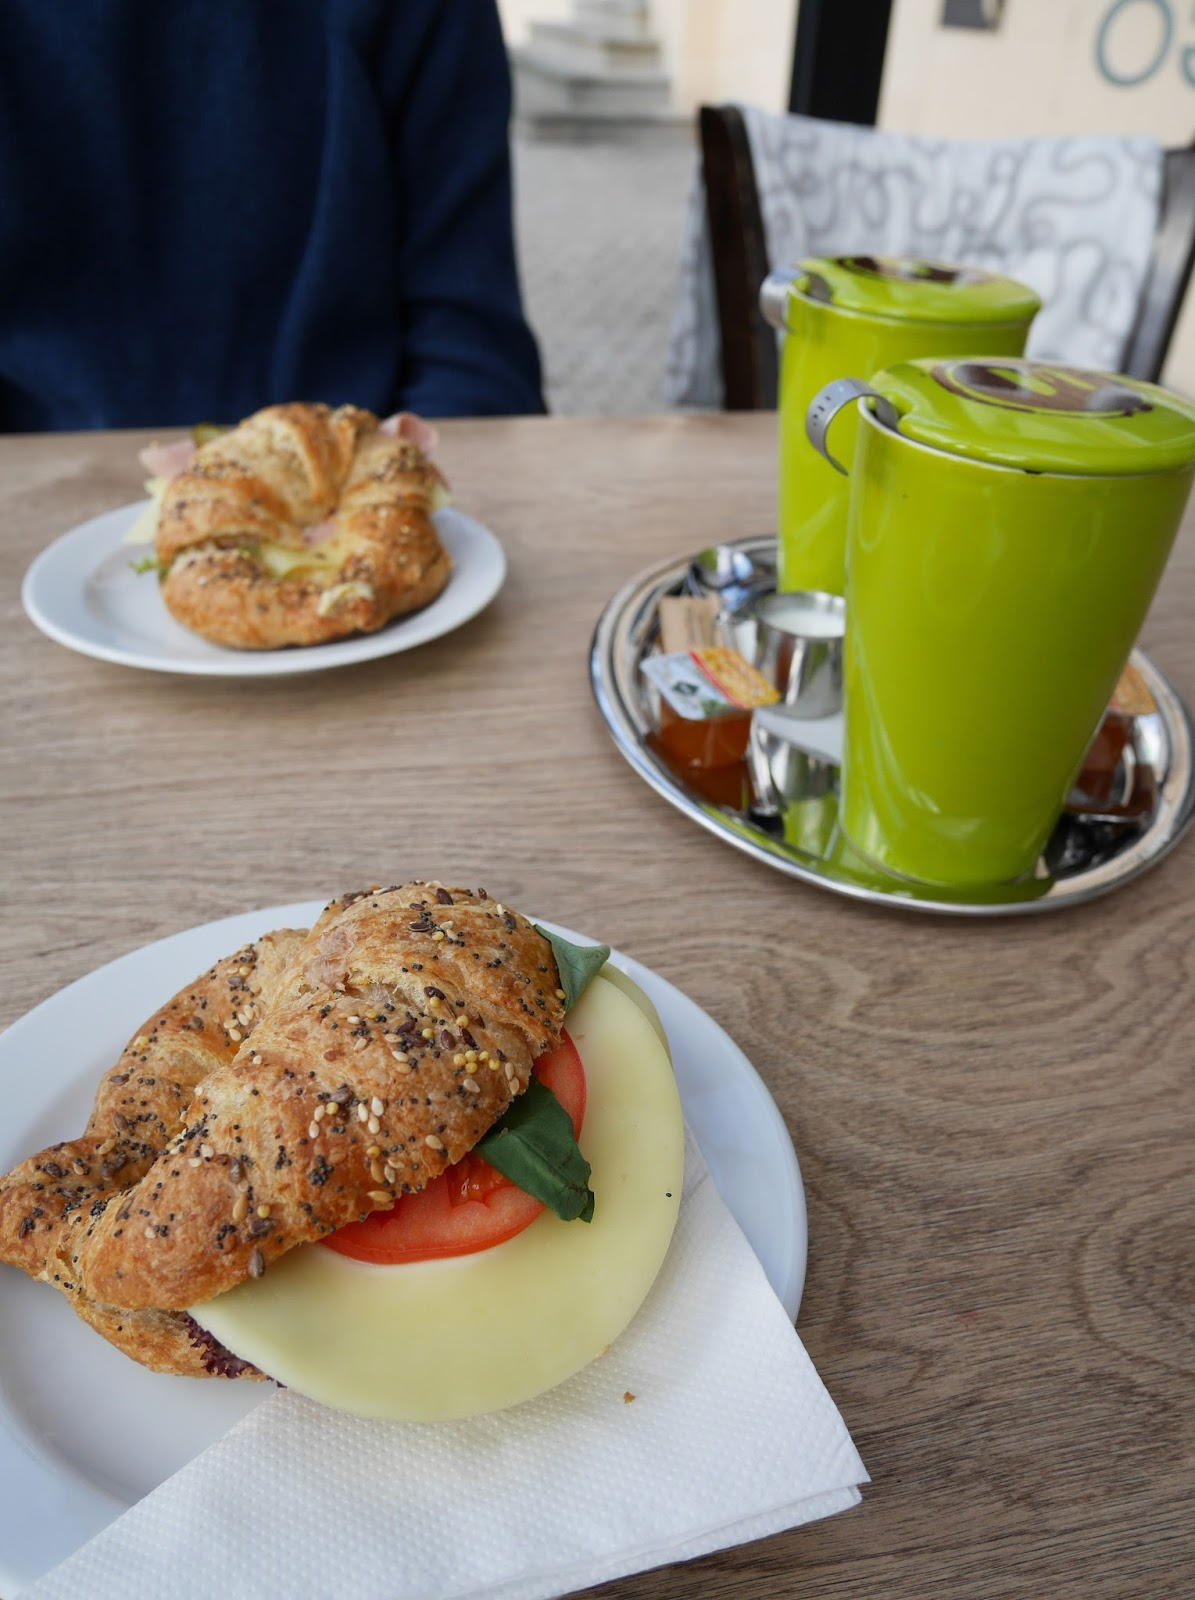 Croissant sandwiches at Moods Bakery and Coffee, Bratislava